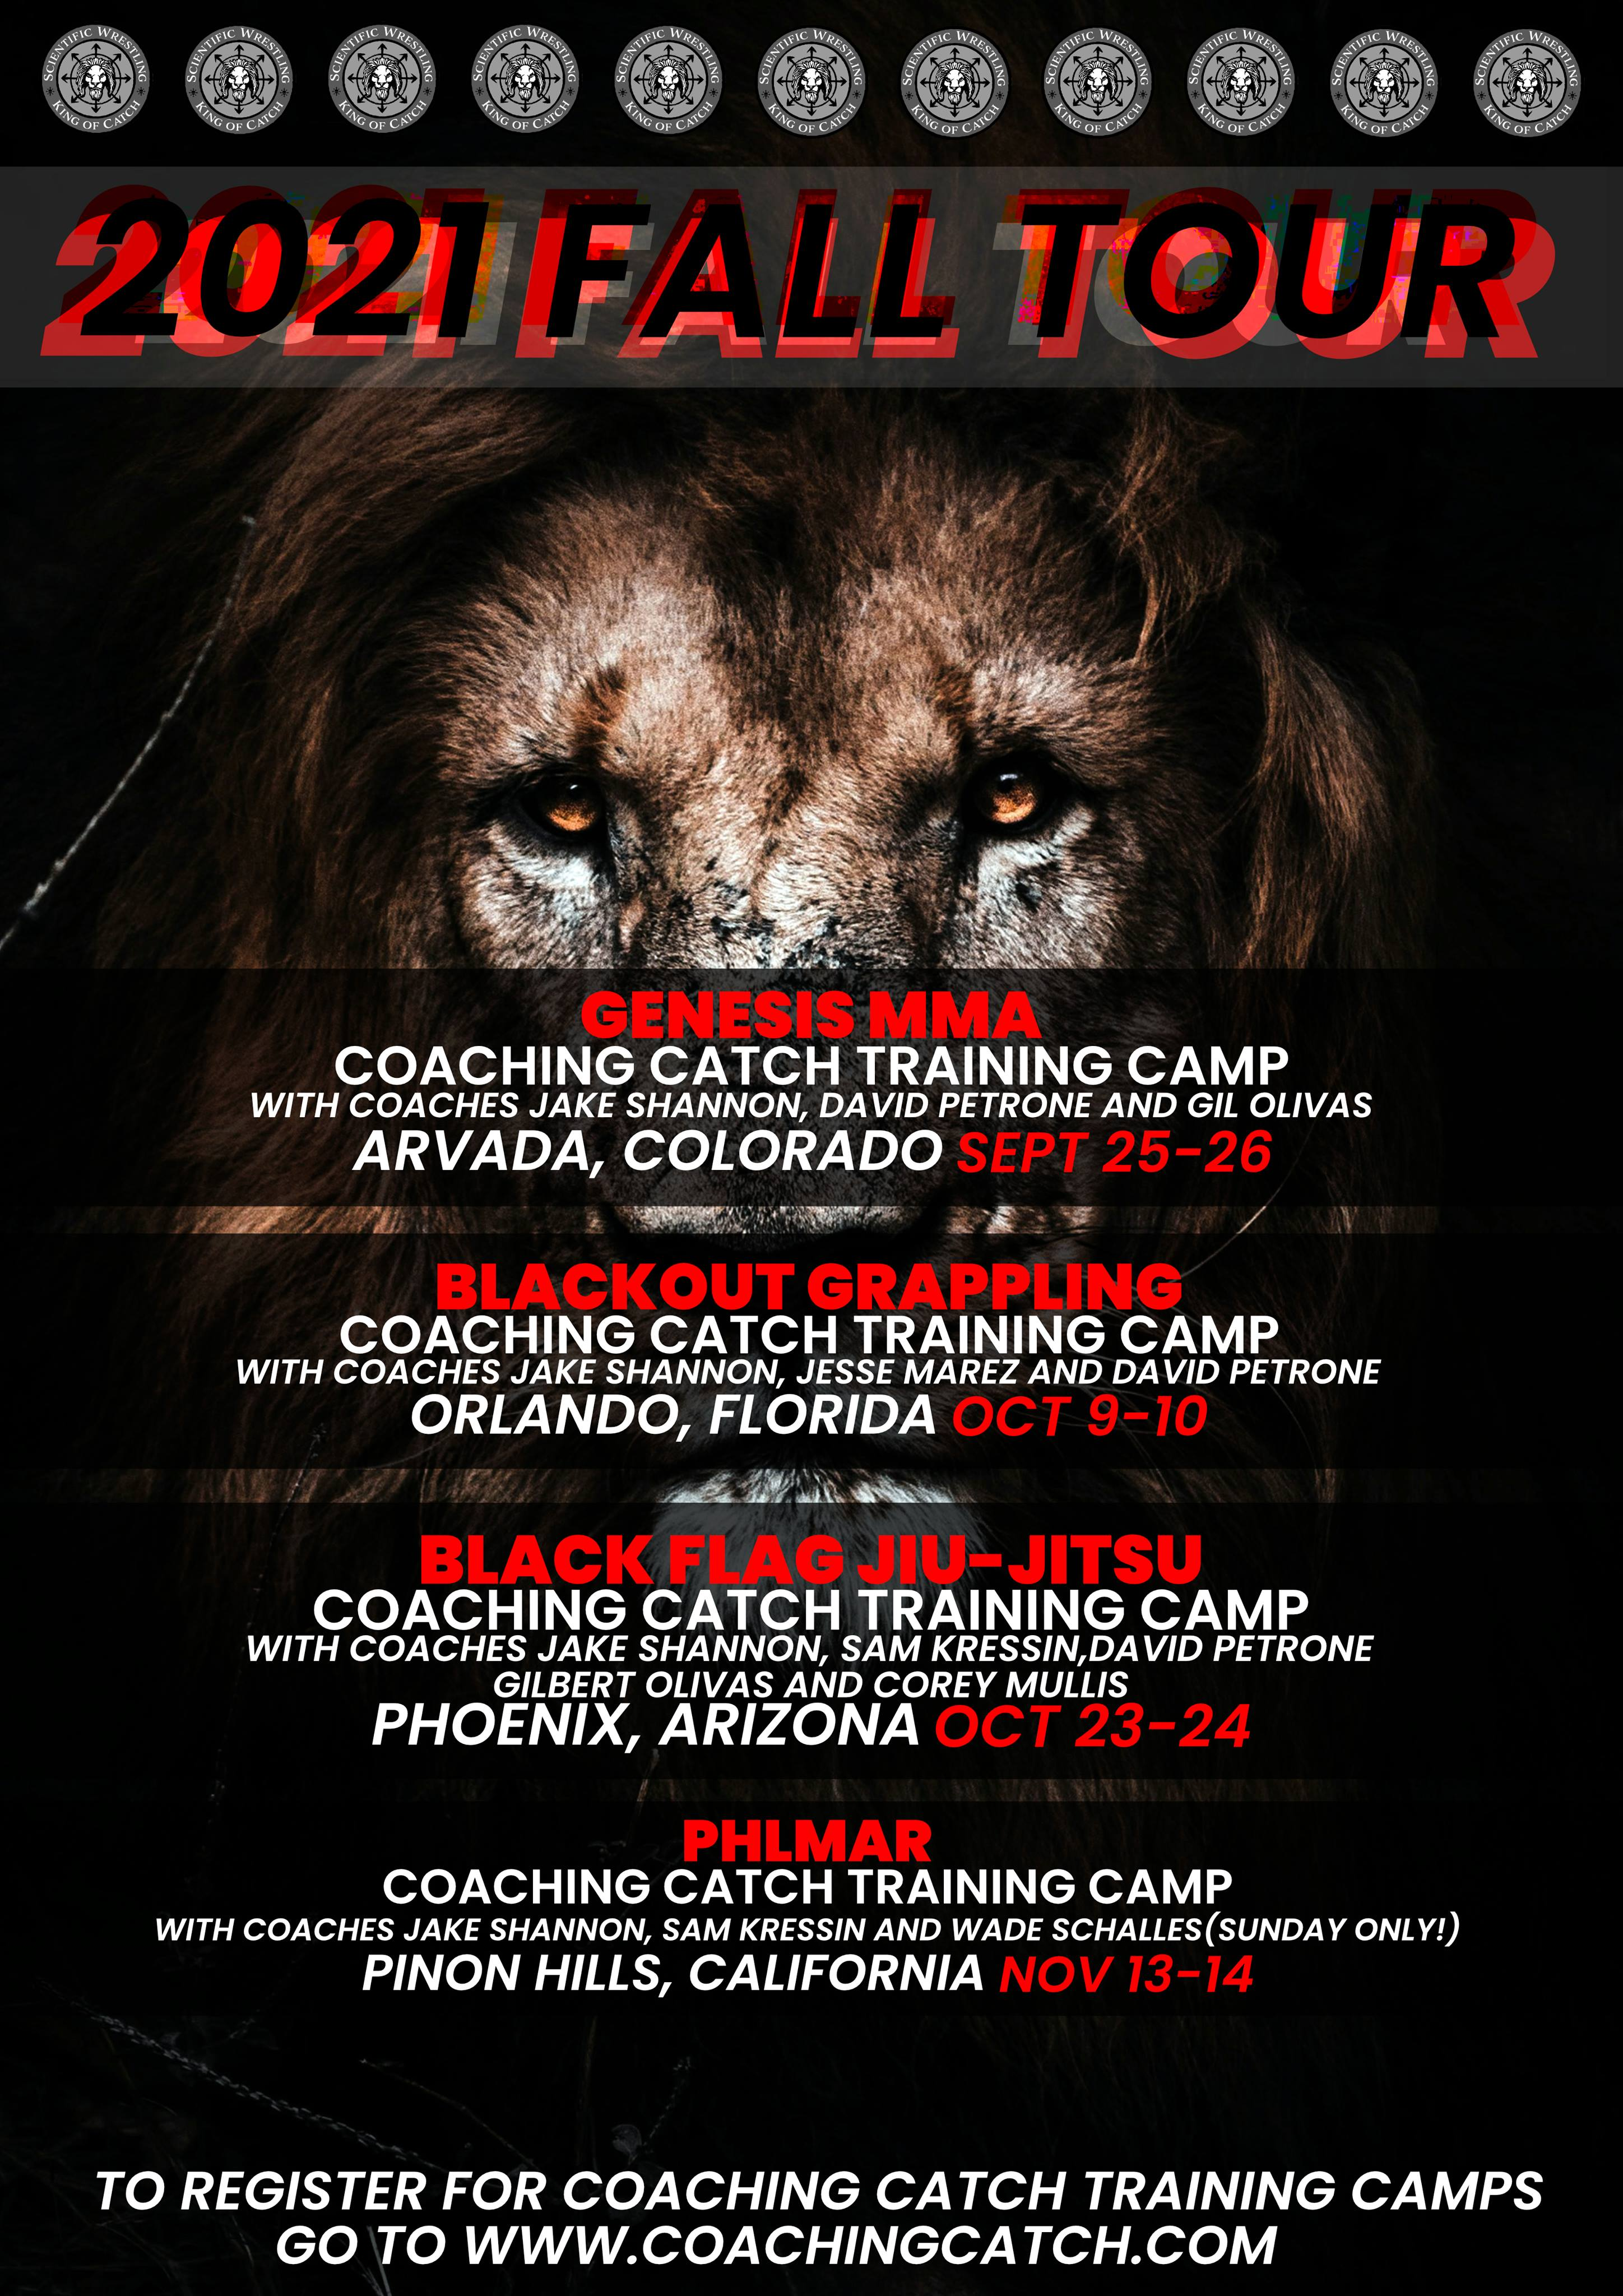 Your chance to learn AUTHENTIC Catch-As-Catch-Can Submission Grappling from the BEST